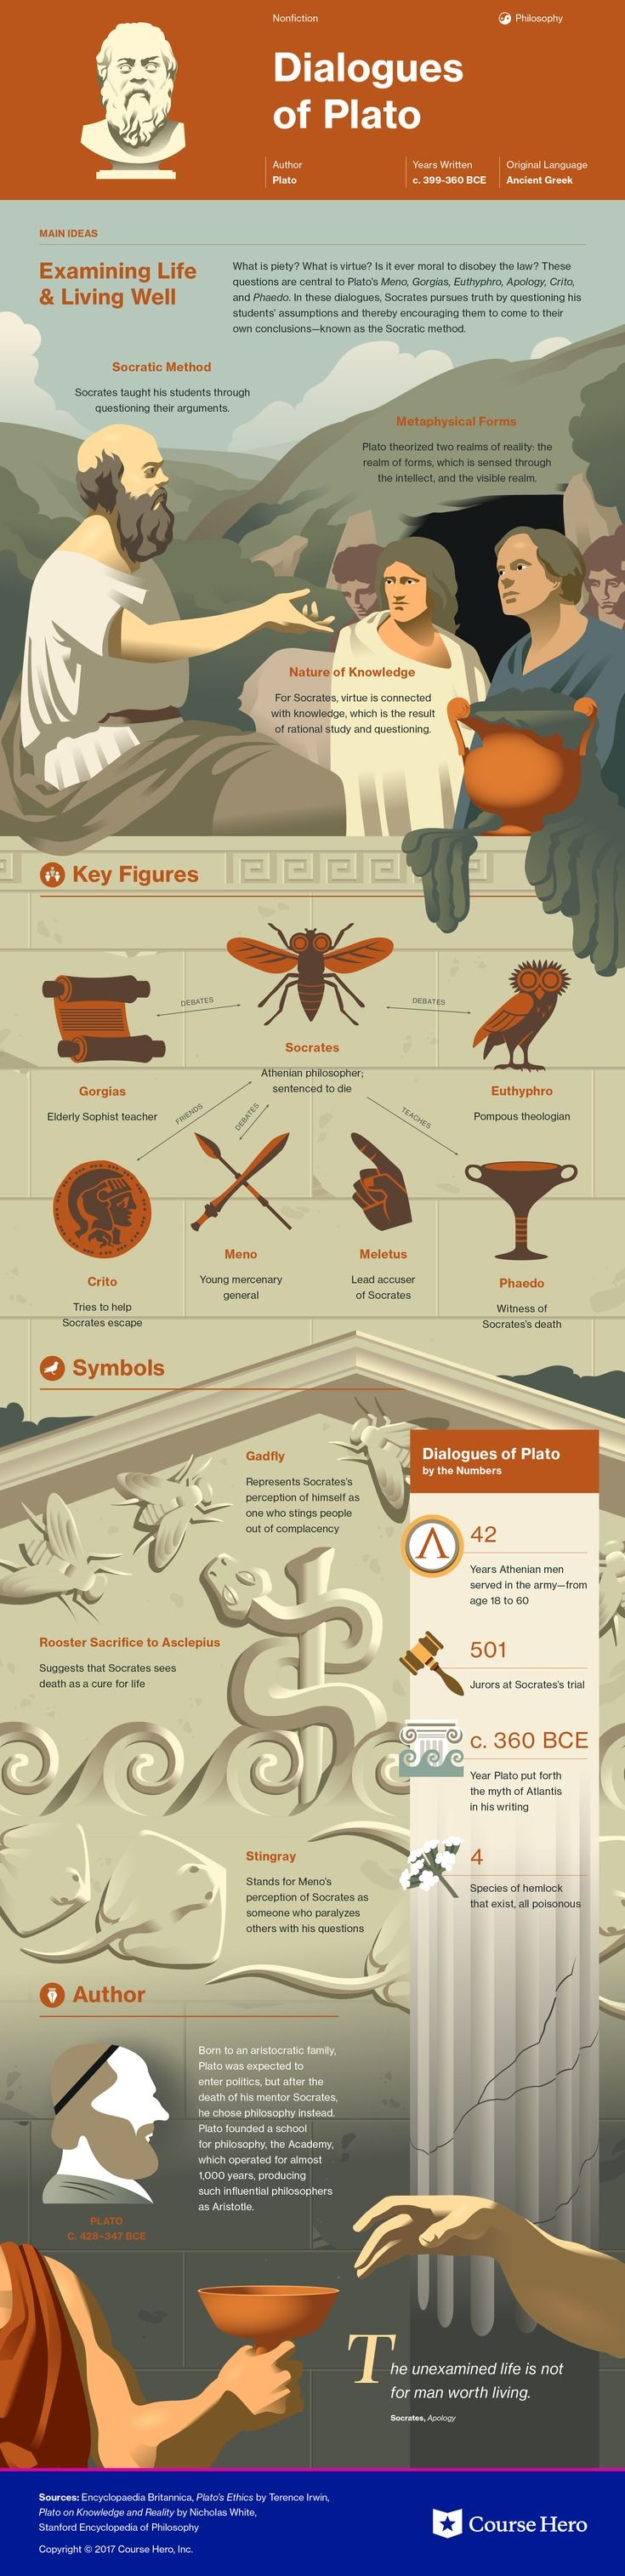 This @CourseHero infographic on Dialogues of Plato is both visually stunning and informative!